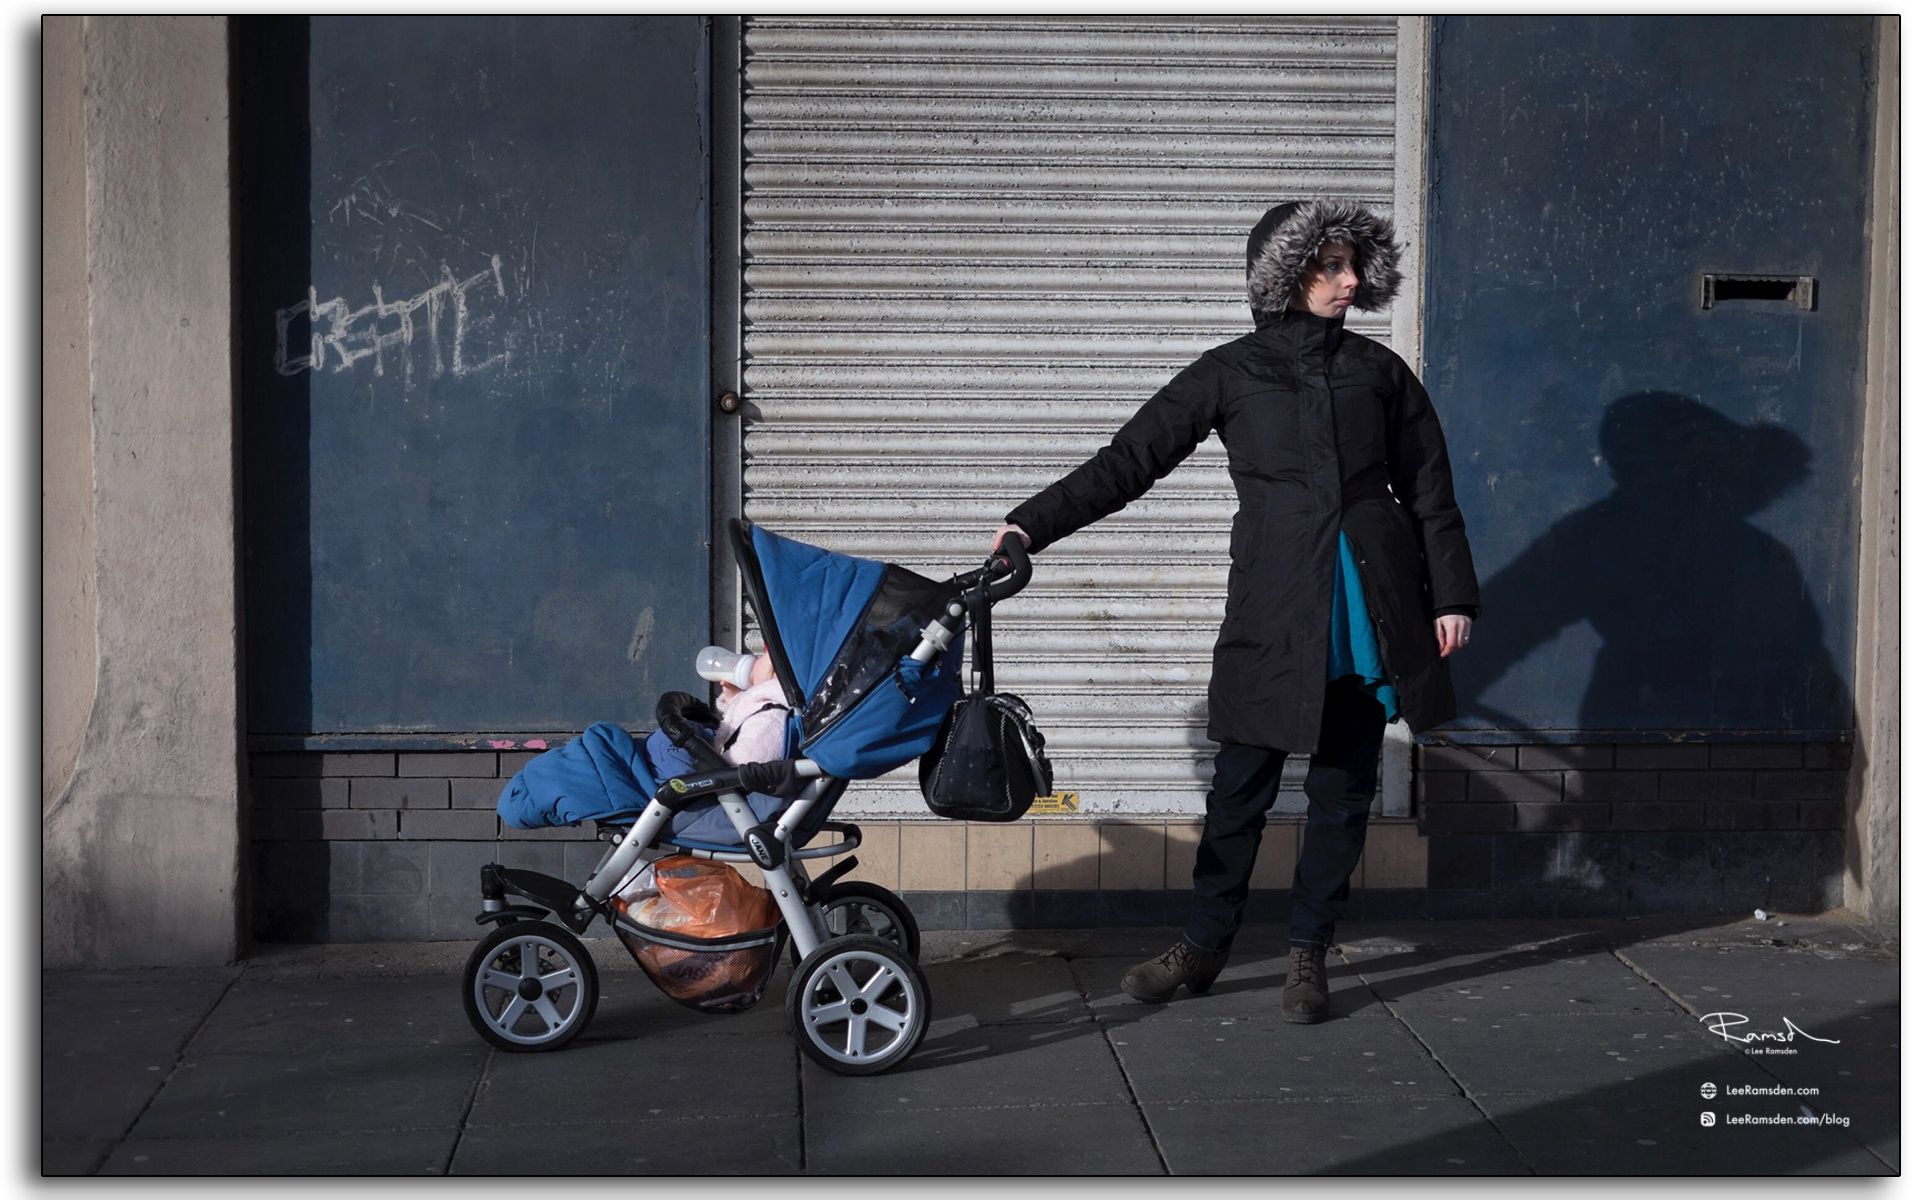 Single mother, pushing pram, baby, rough town, Blackpool, south shore, lee ramsden, professional photographer, reportage